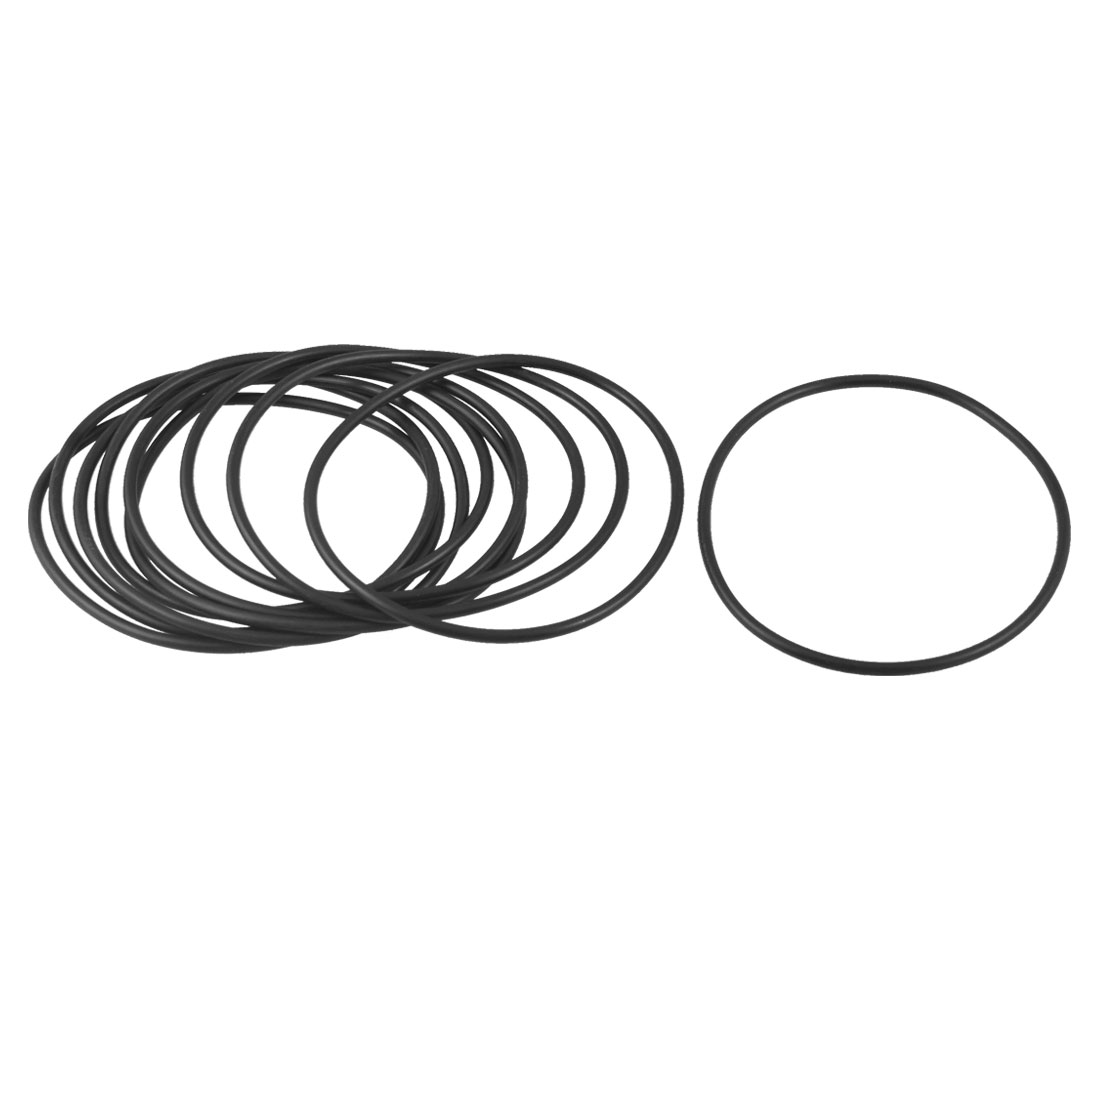 Unique Bargains 10 Pcs 86mm x 79.8mm x 3.1mm Flexible Rubber O Ring Seal Washer Black - image 1 of 1